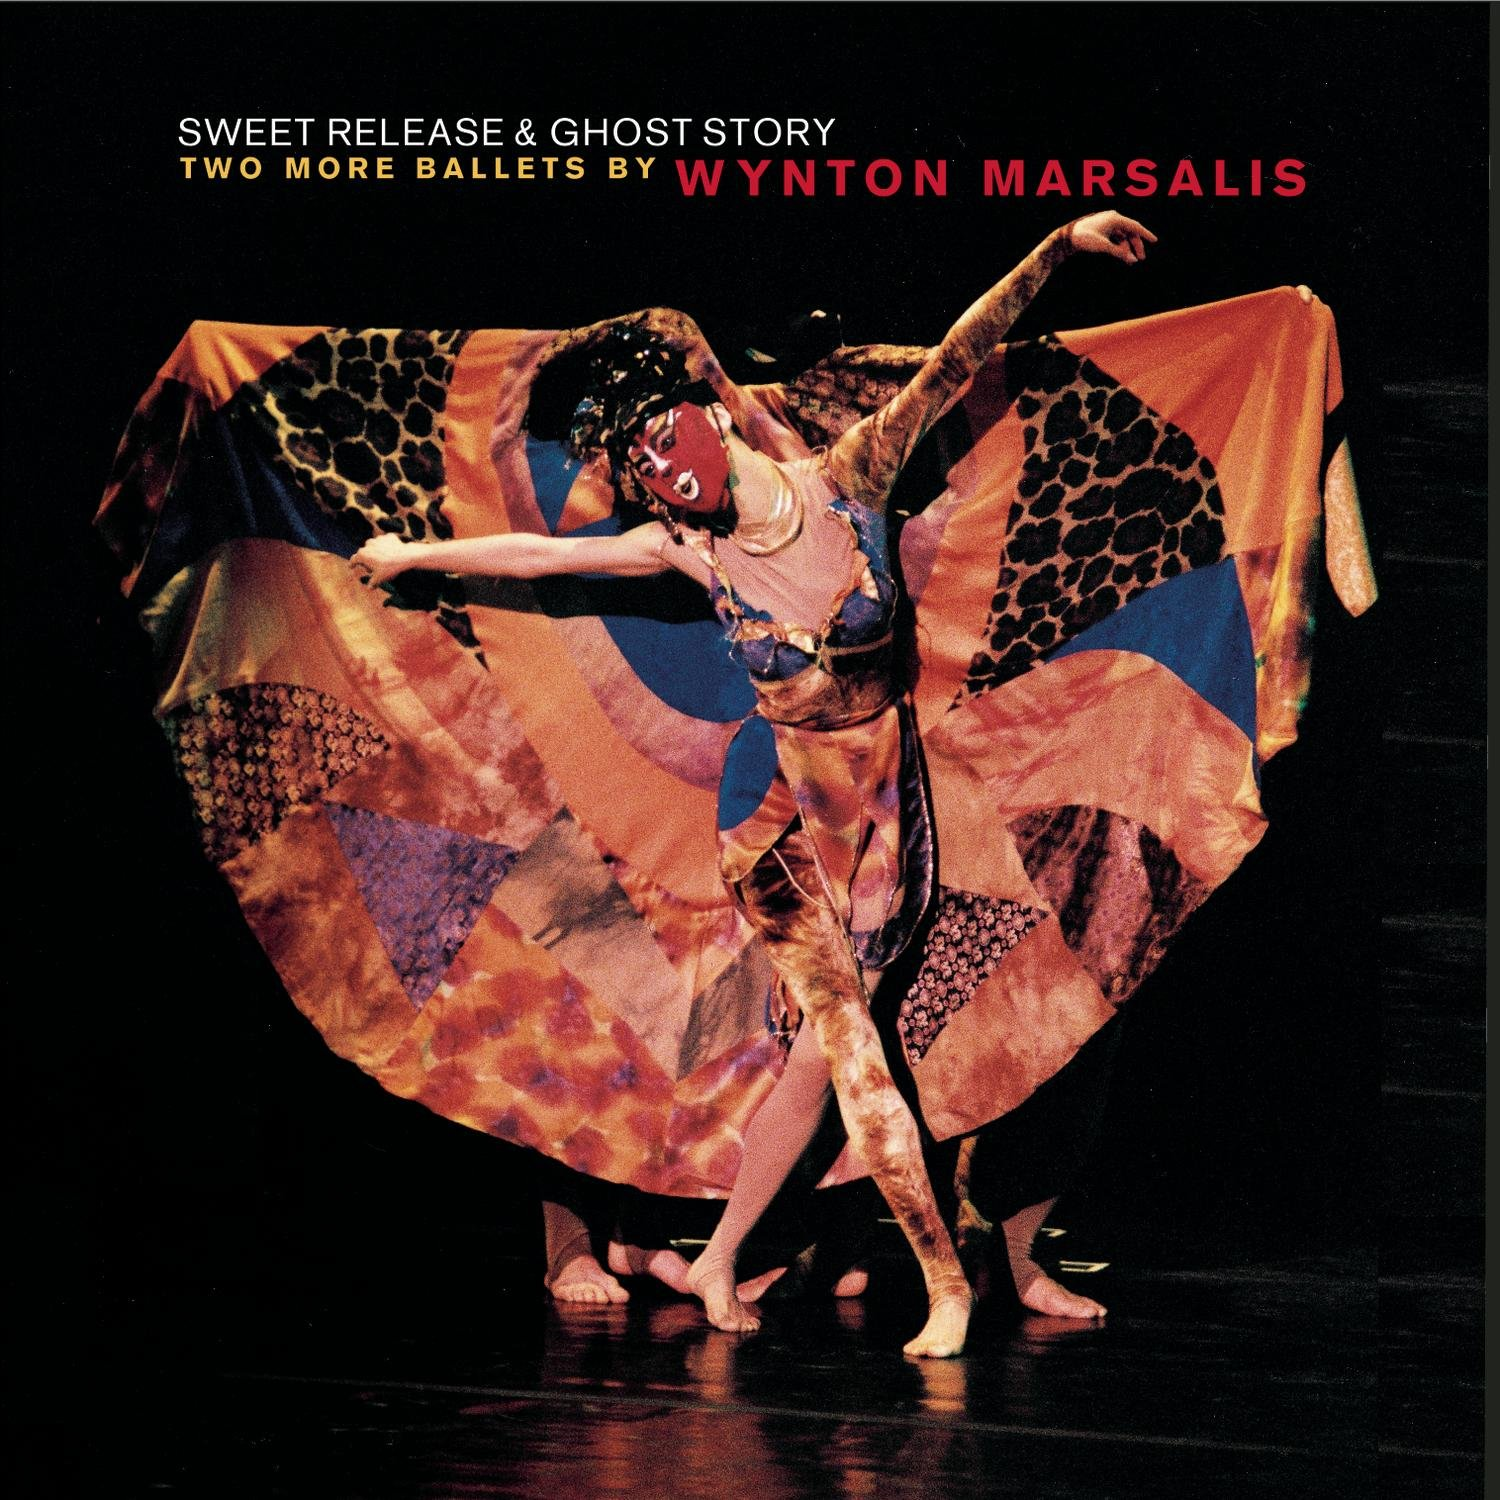 Wynton Marsalis: Cheap bargain Sweet Story Super sale period limited Ghost Release